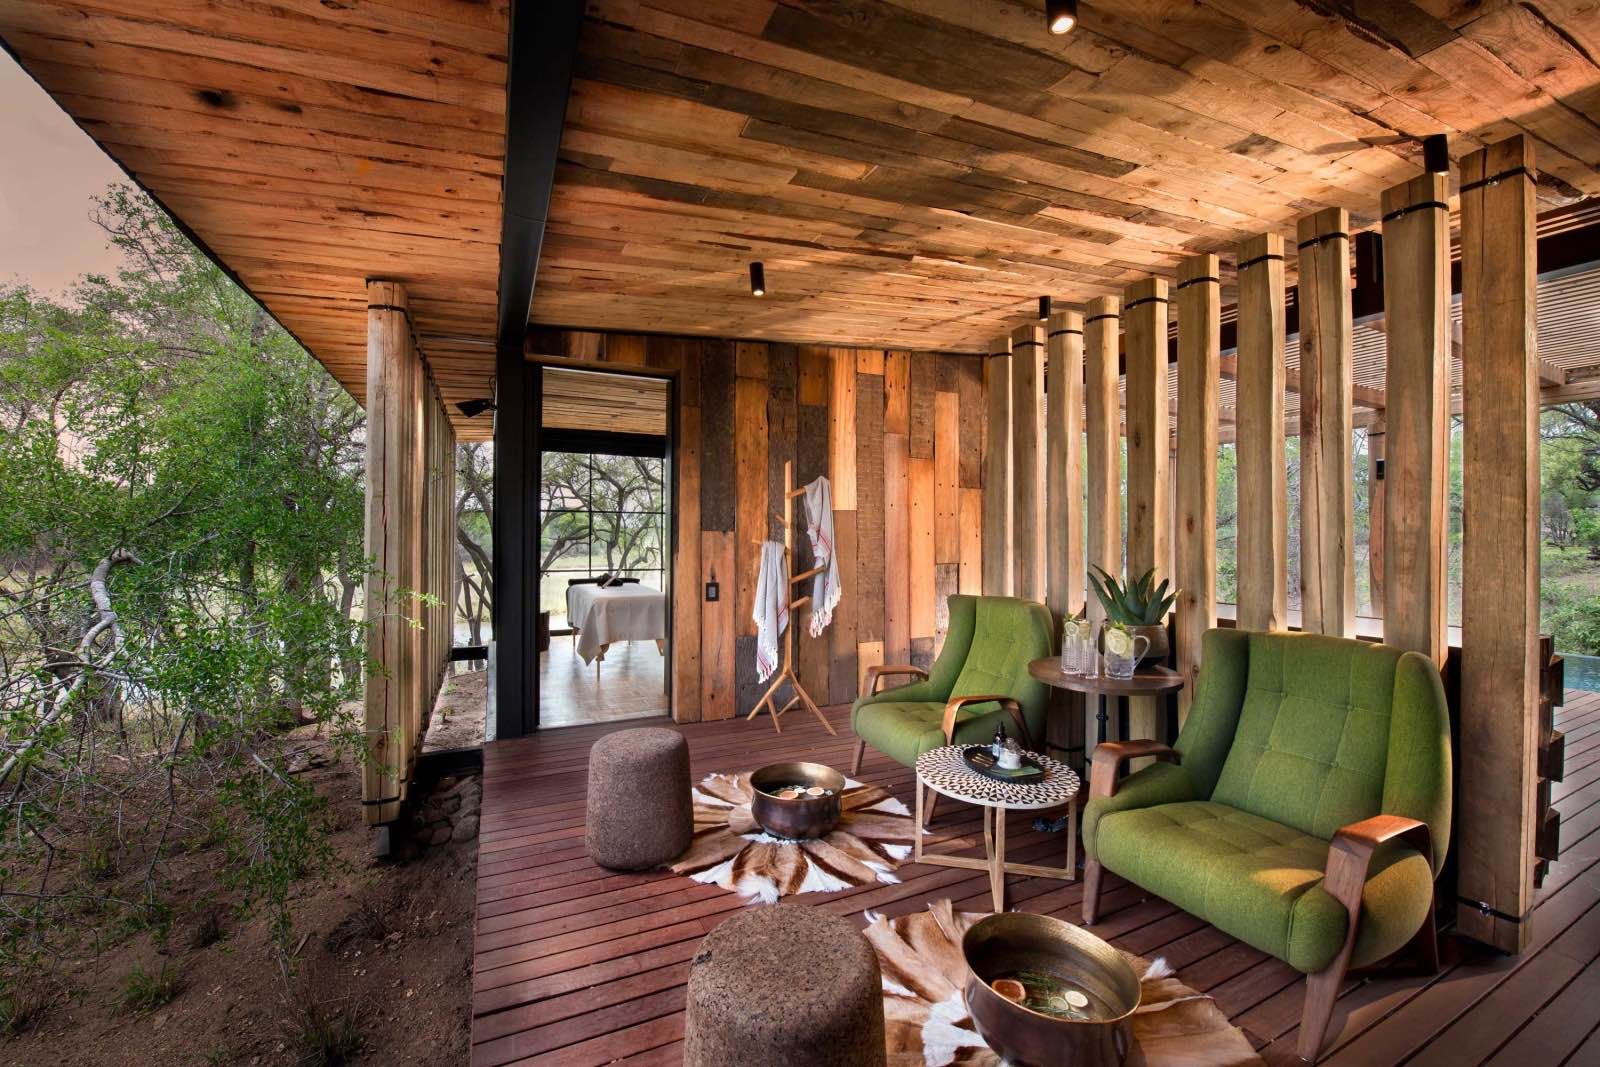 Massages in heaven at the Tengile spa